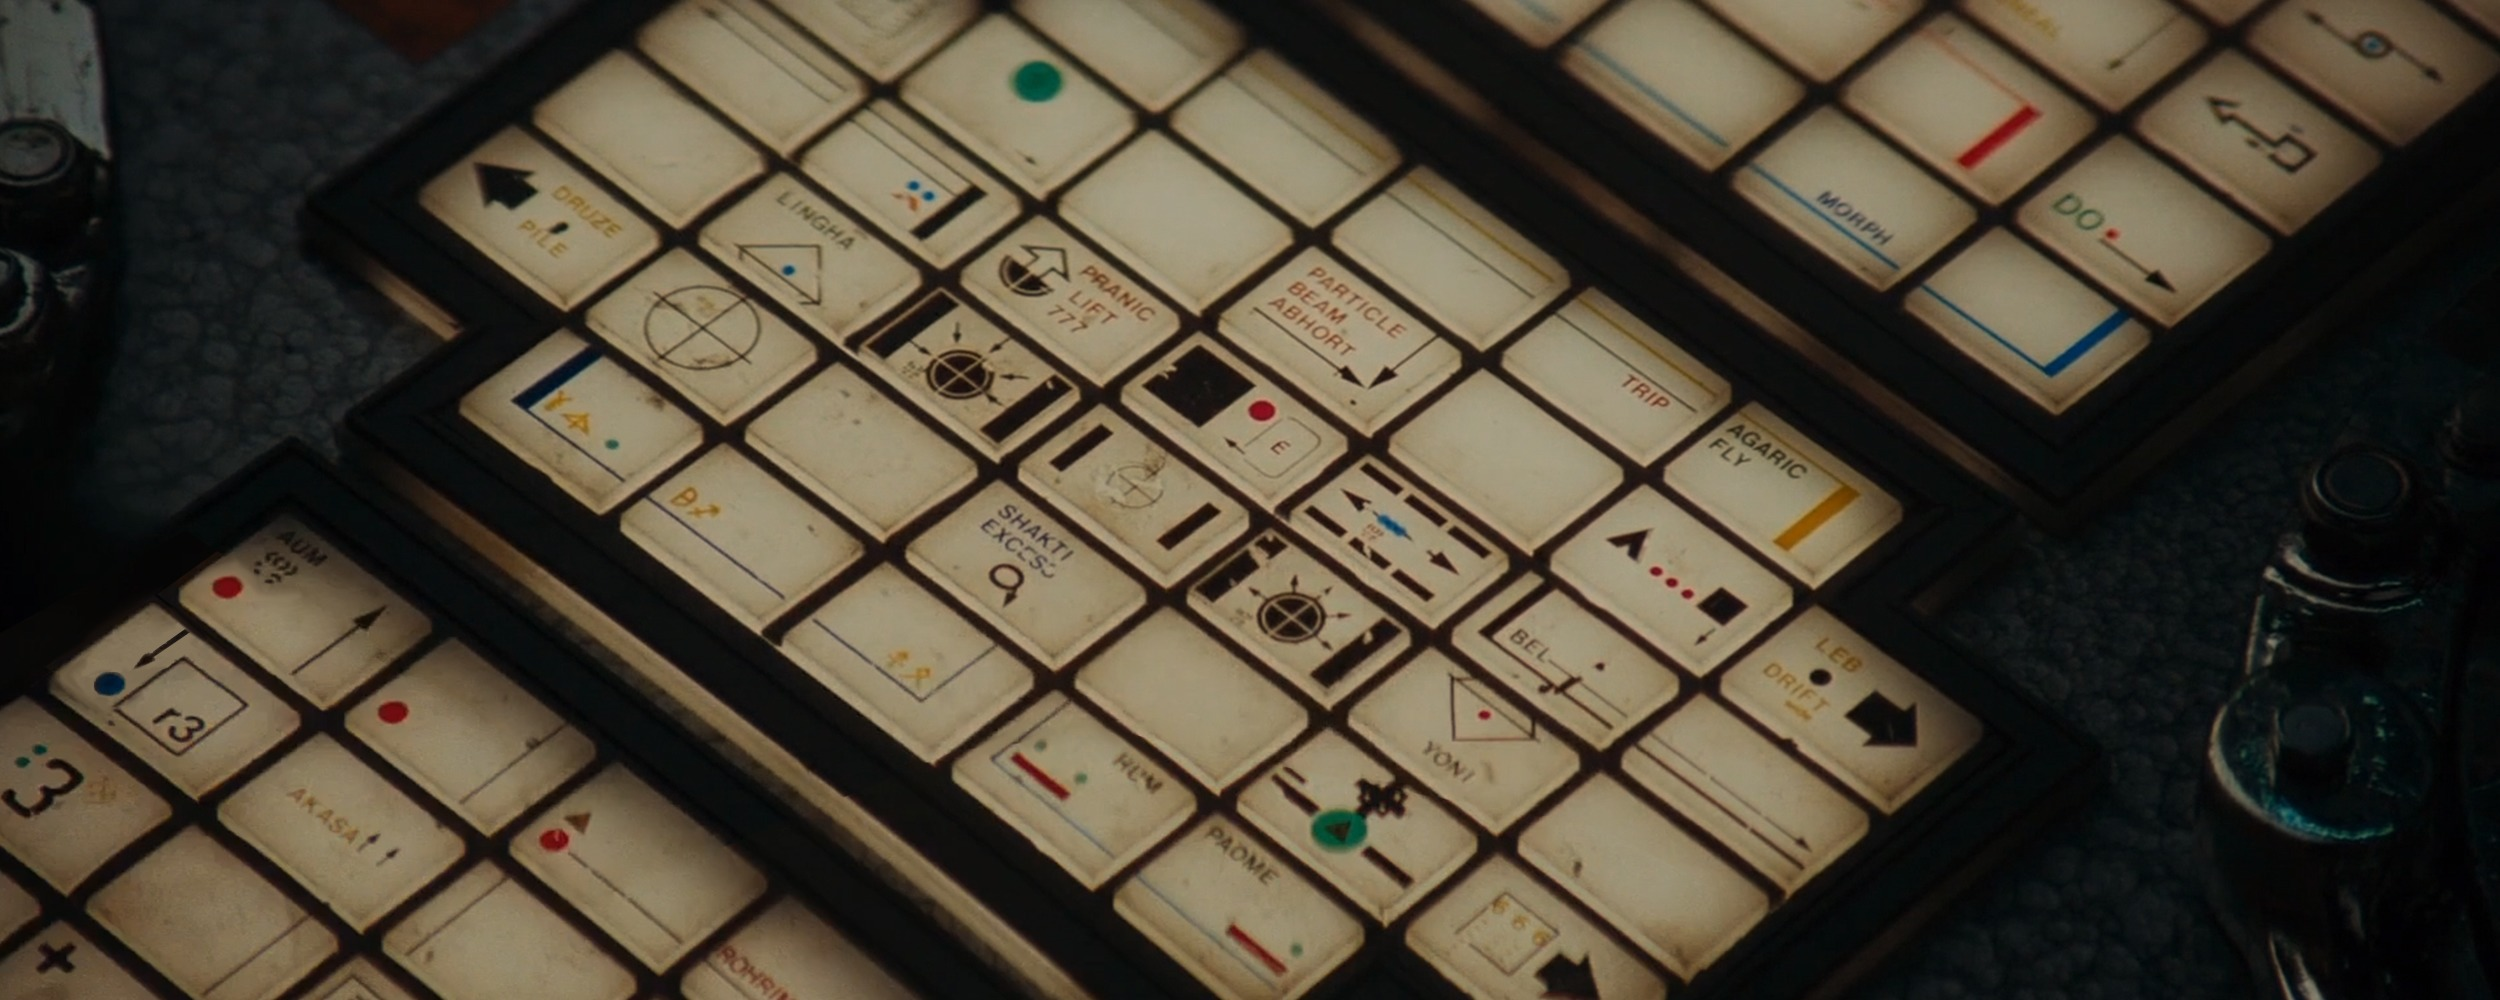 The ultimate guide to analog control panels in sci-fi movies